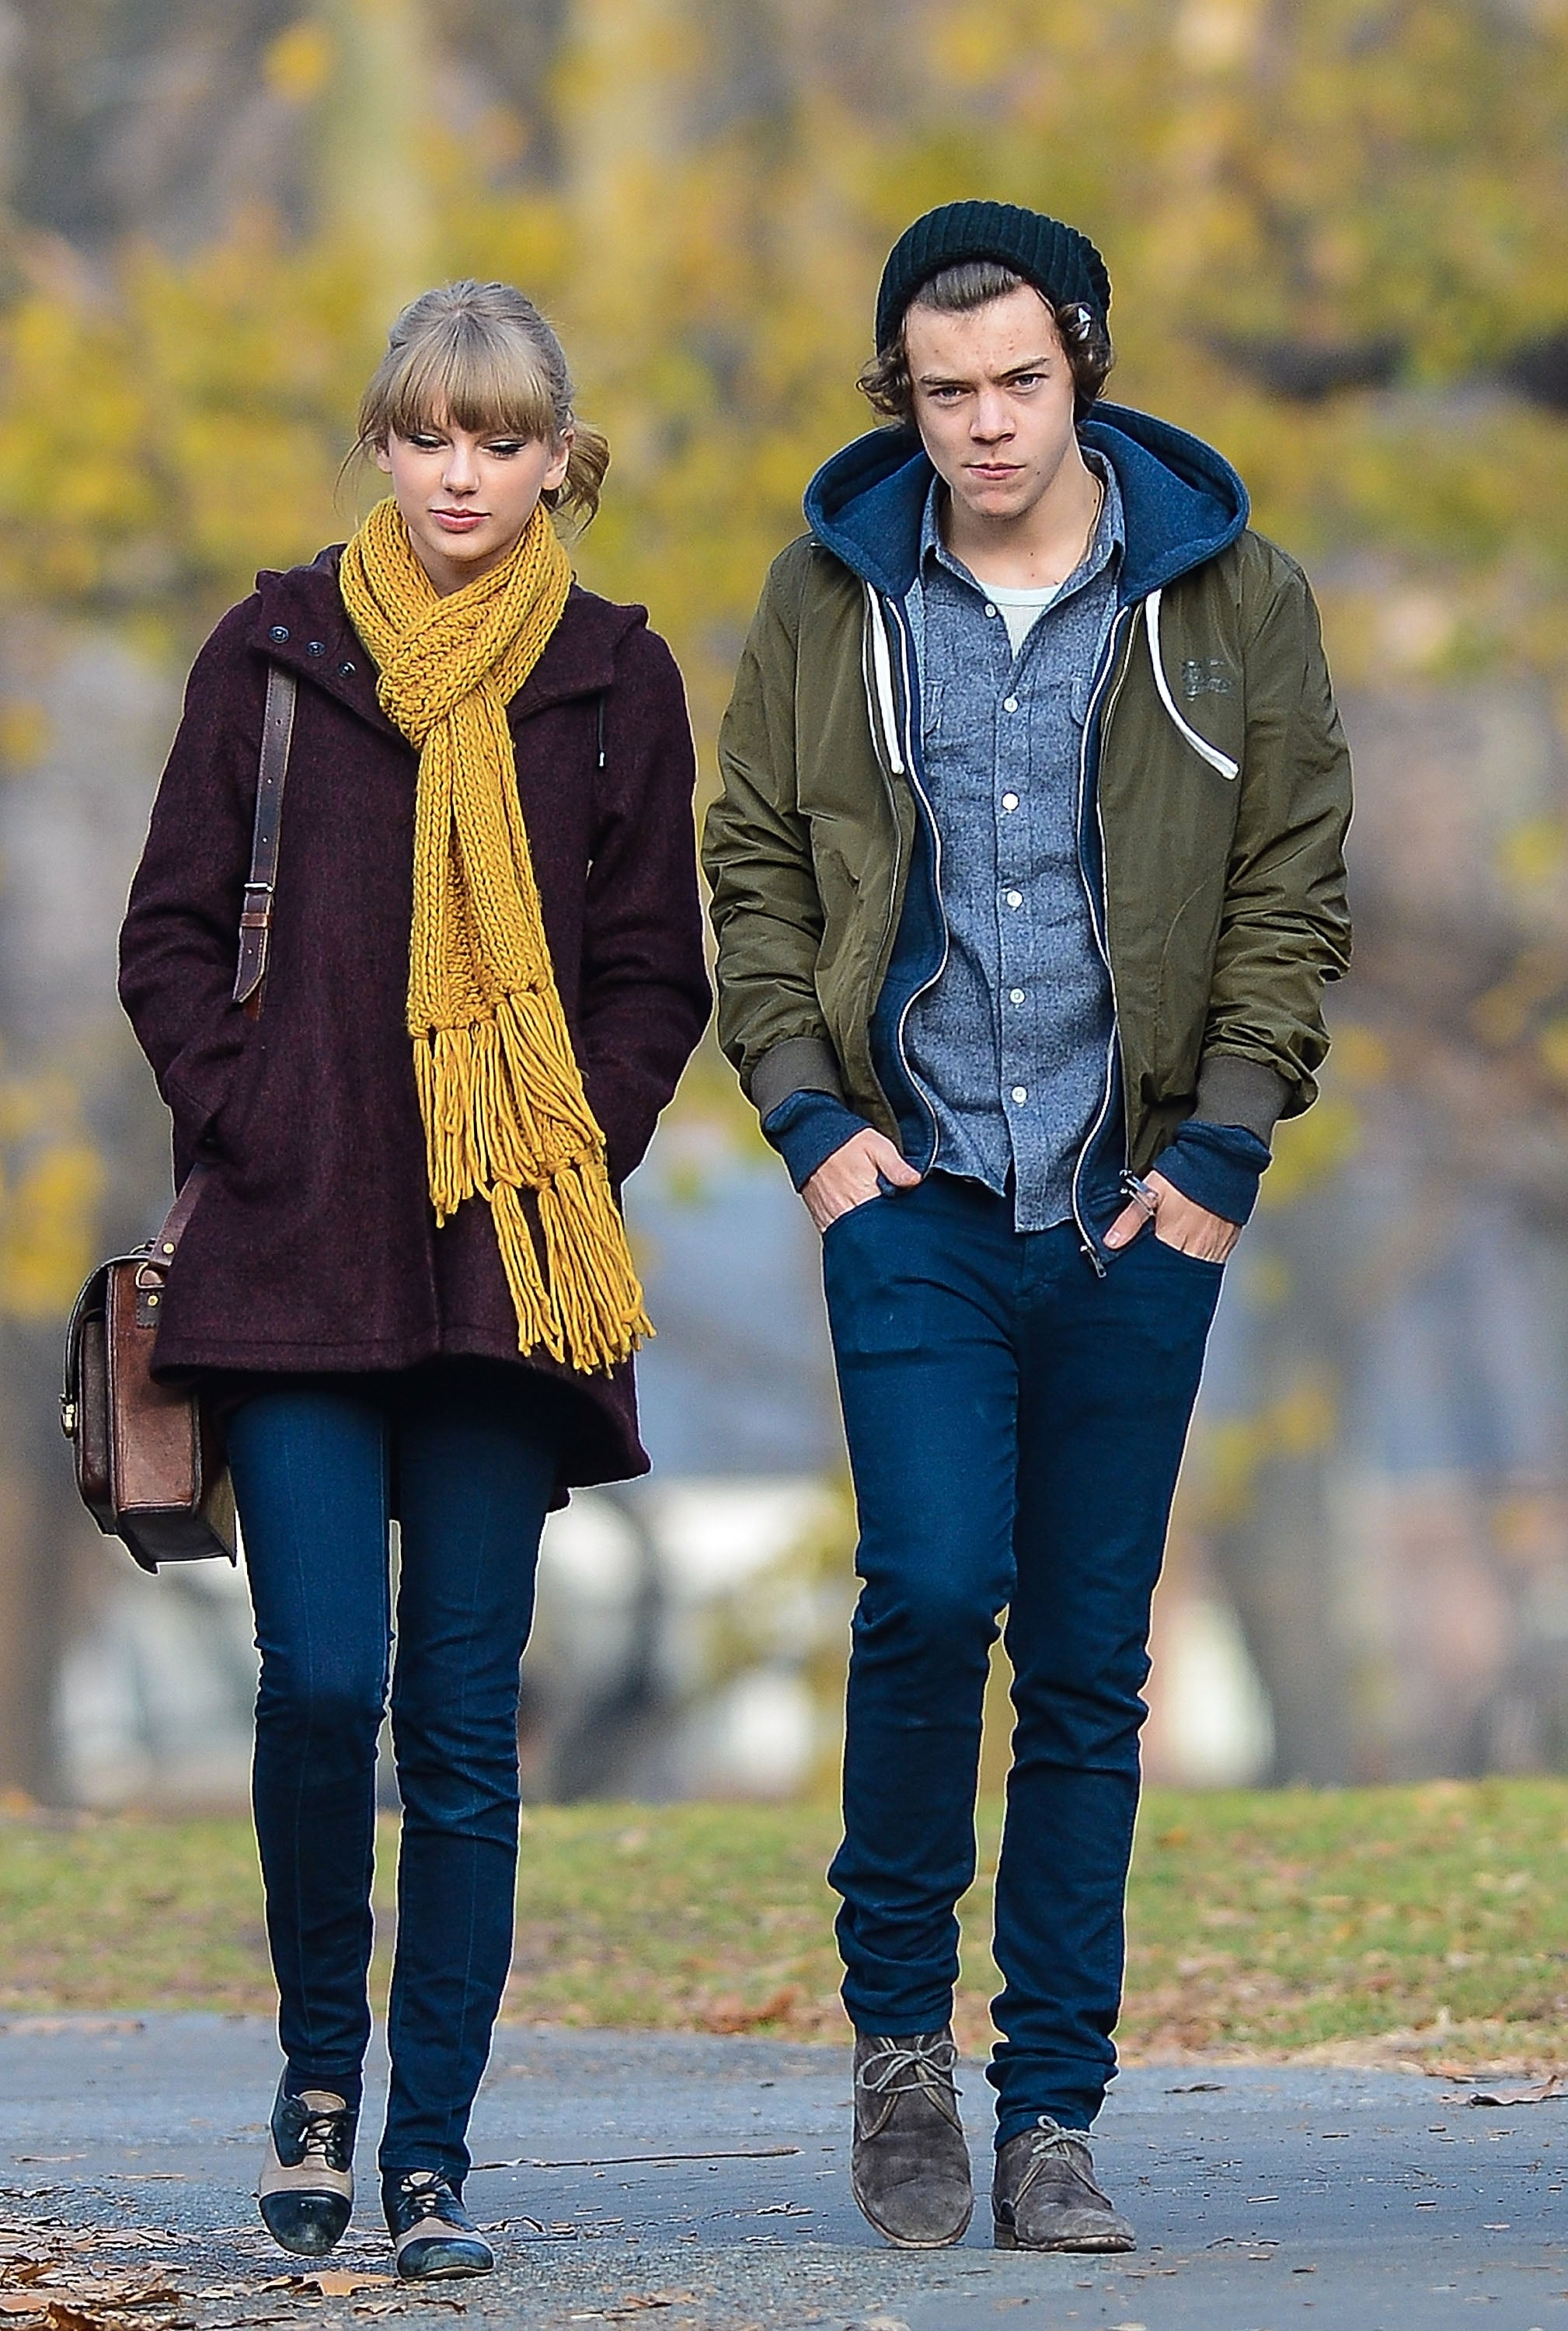 NEW YORK, NY - DECEMBER 02: Taylor Swift and Harry Styles are seen walking around Central Park on December 02, 2012 in New York City.  (Photo by David Krieger/Bauer-Griffin/GC Images)